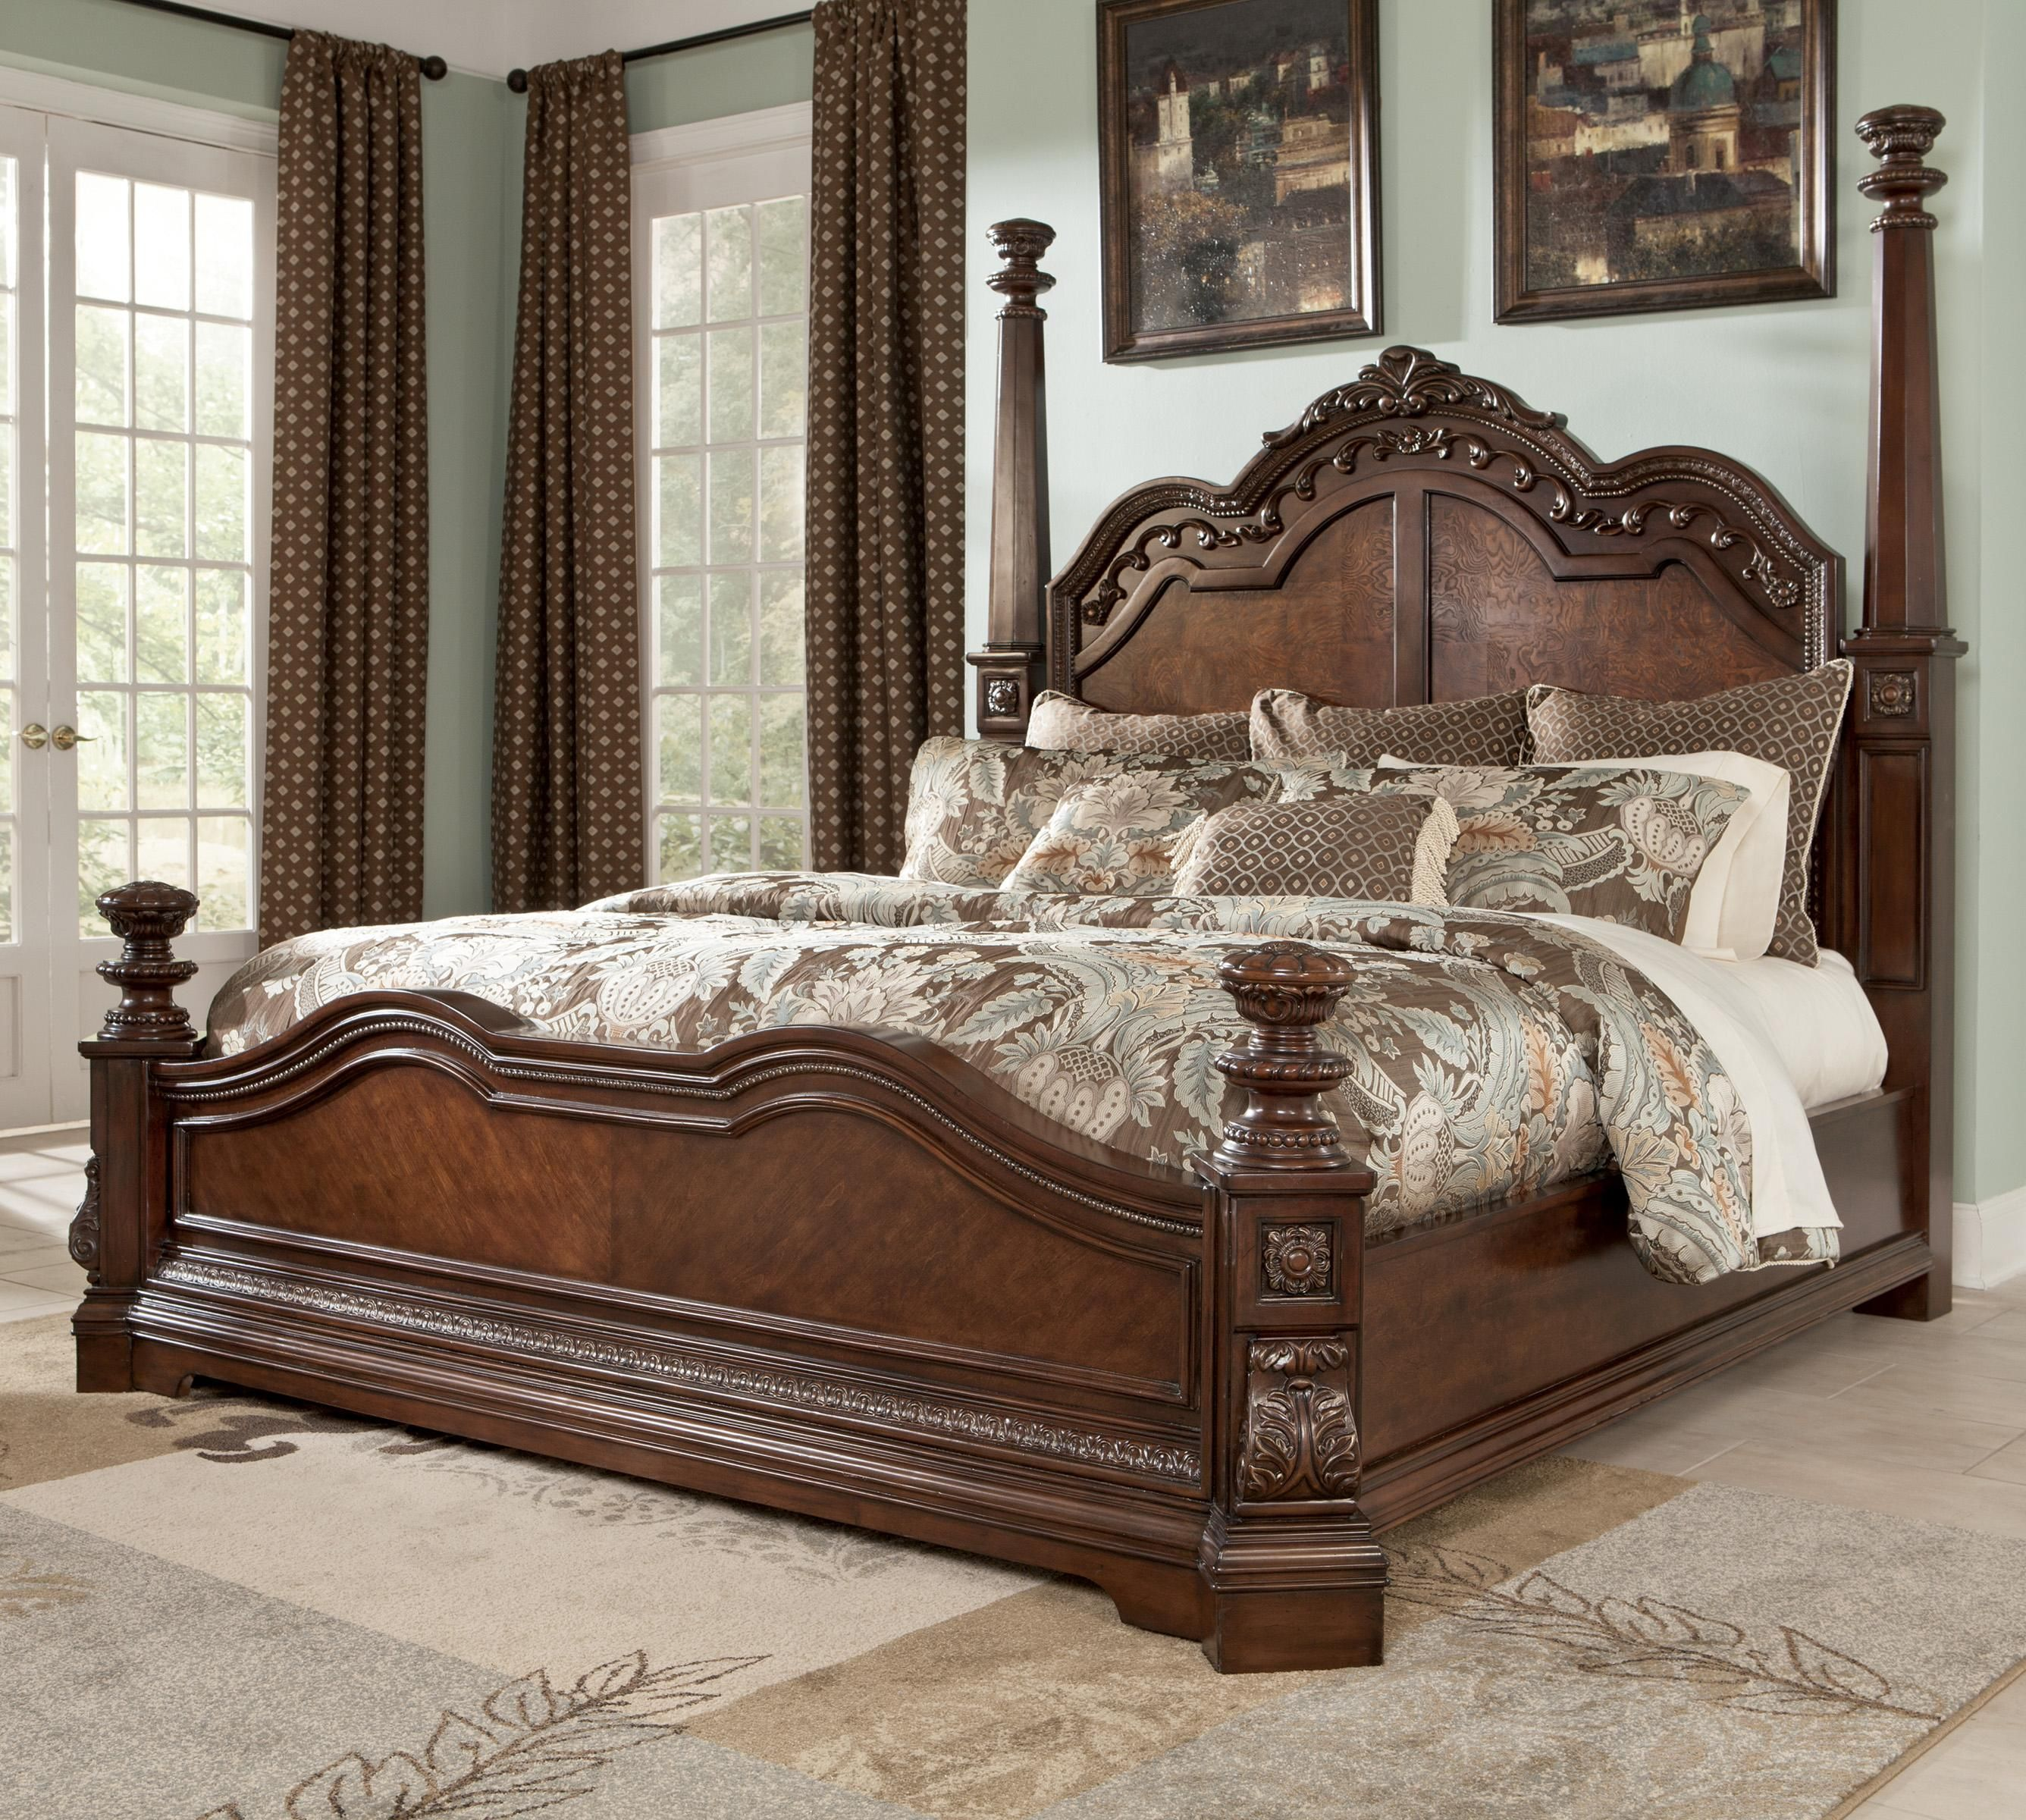 ledelle traditional king poster bed by ashley millennium 1160 del sol download tall bed frame